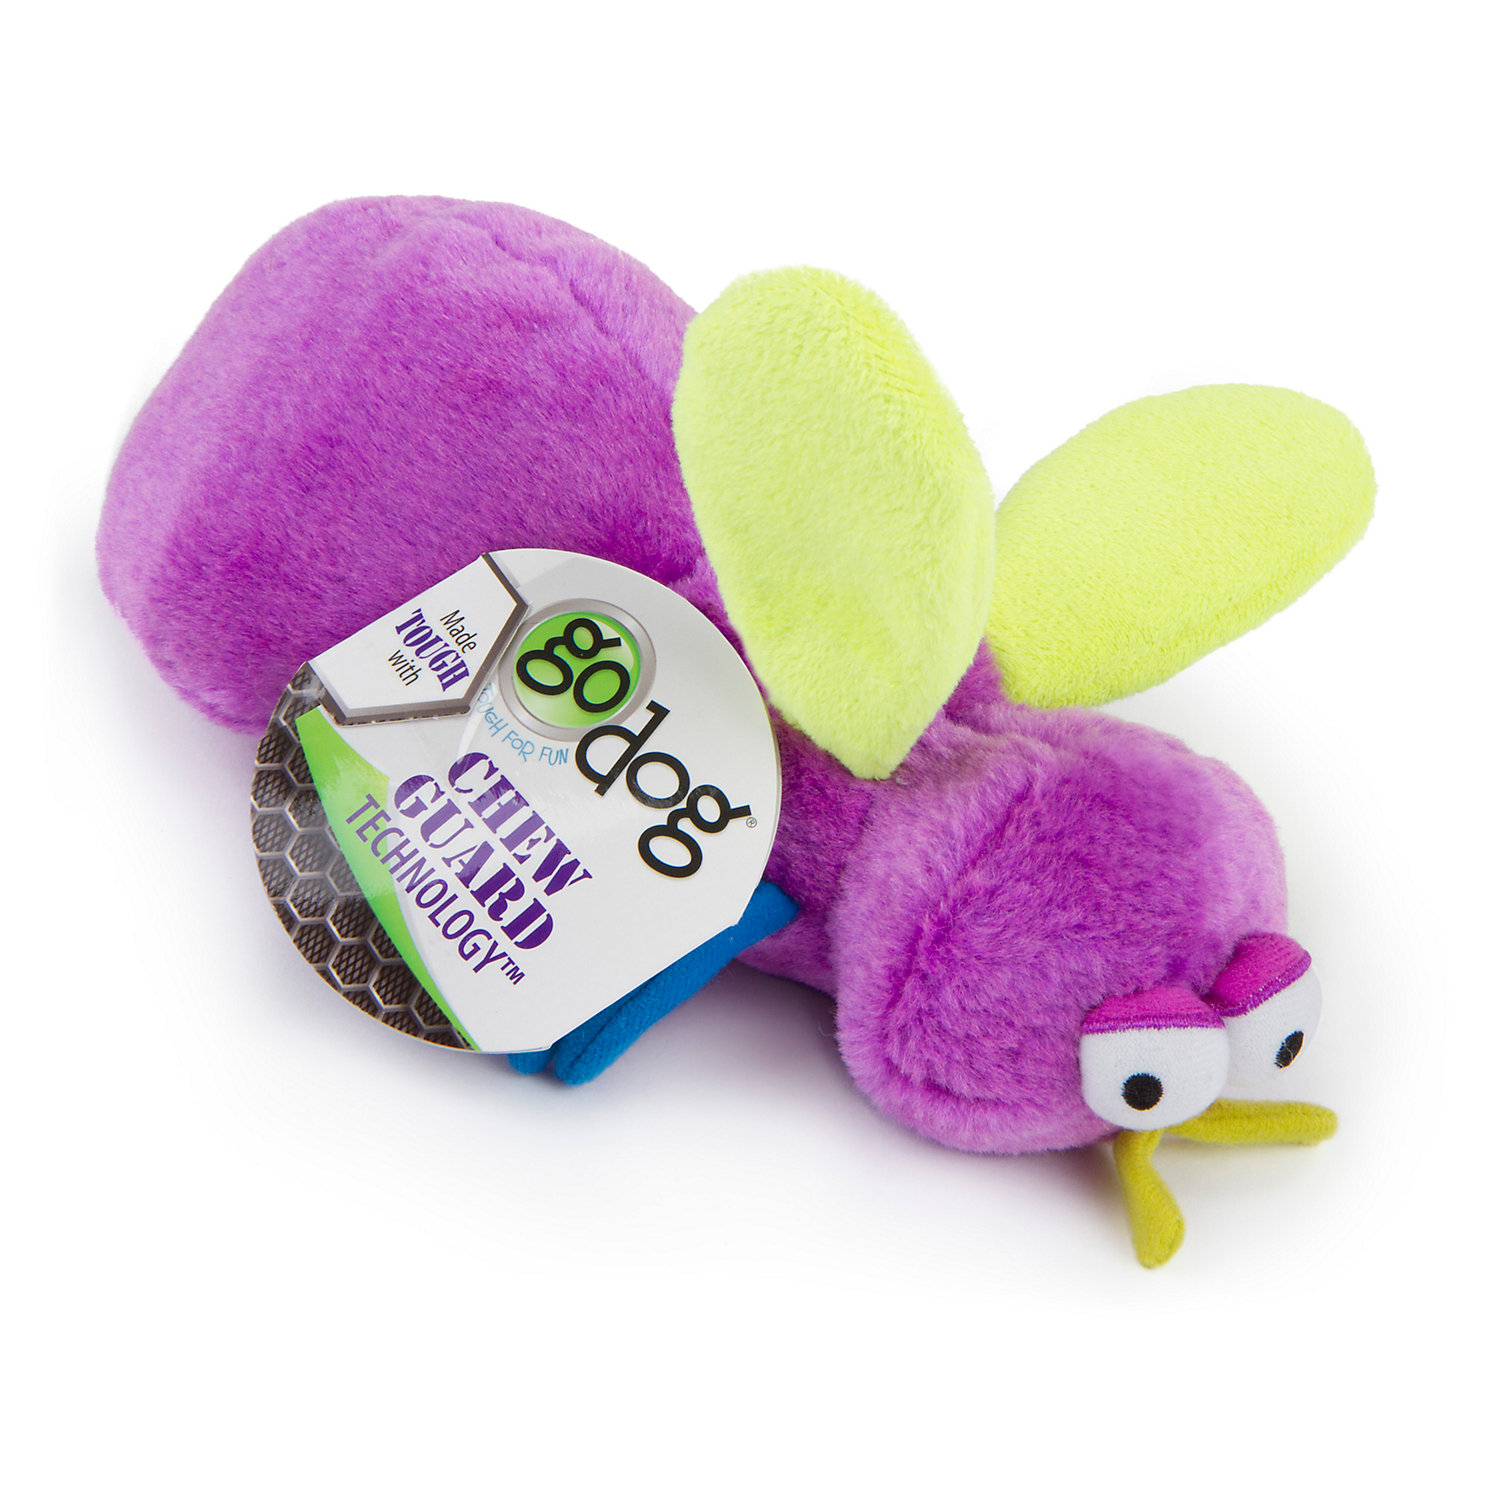 Image of Godog Bugs Fly Purple Large With Chew Guard Purple